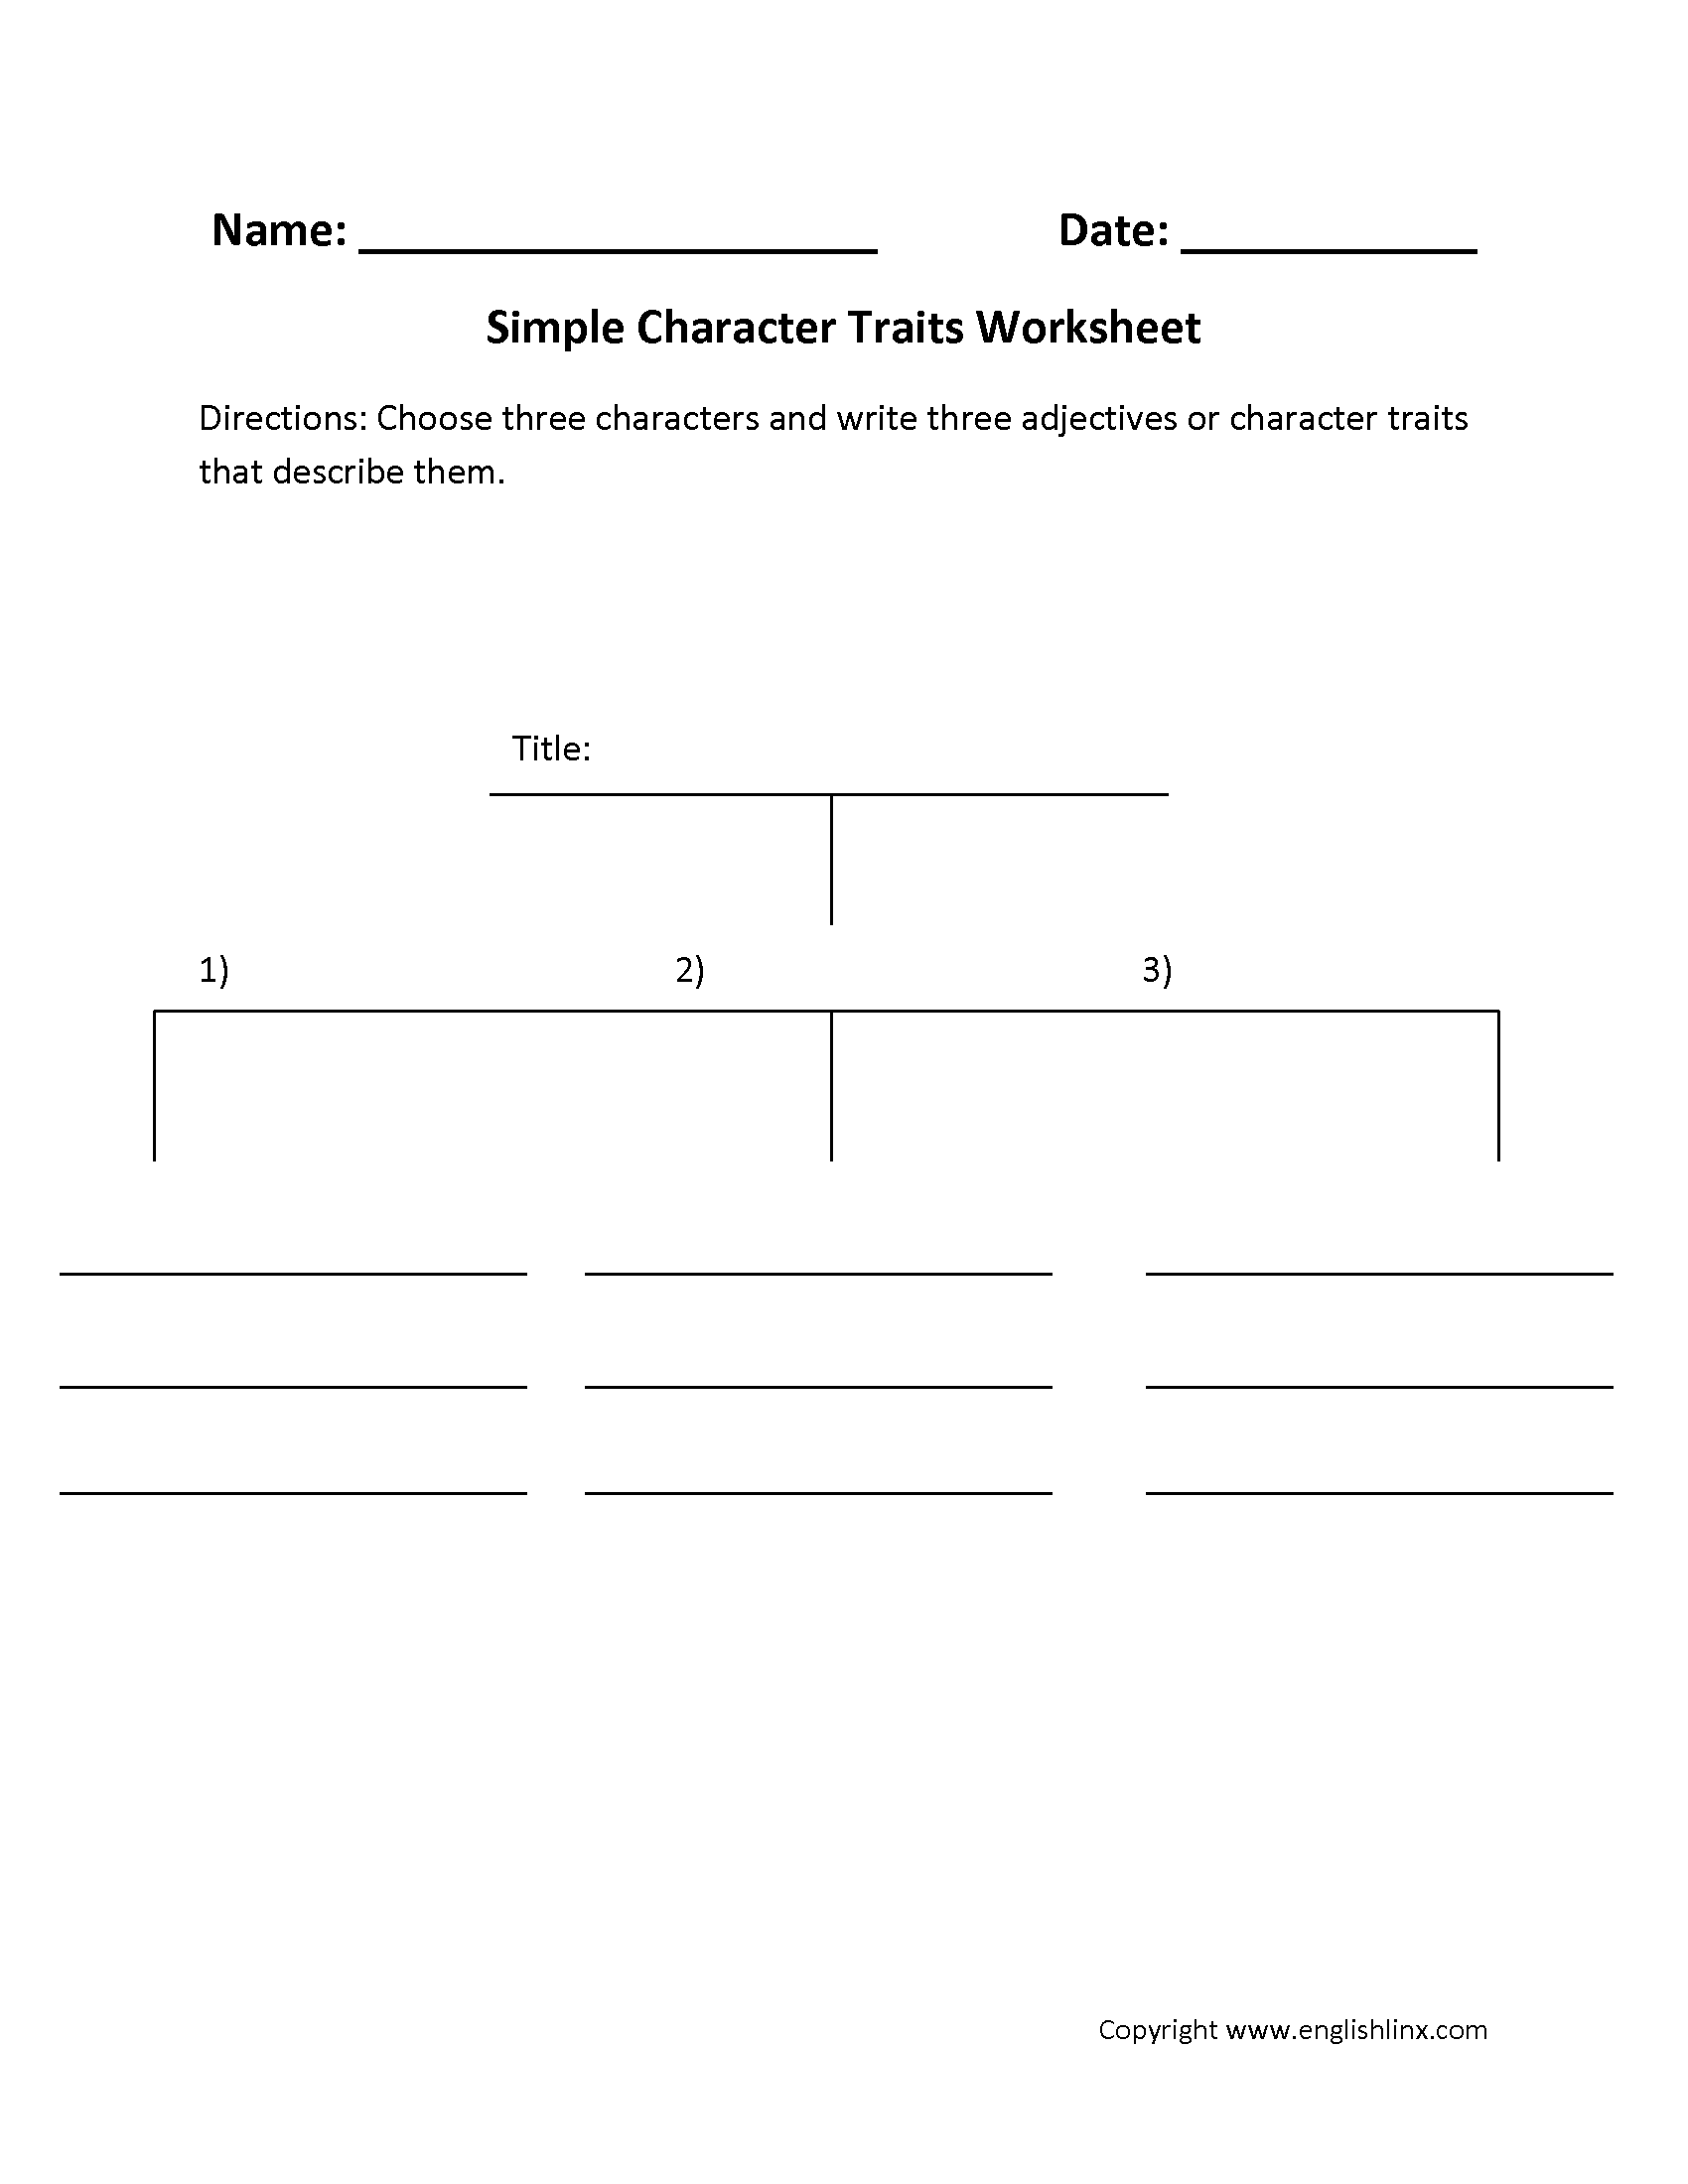 worksheet Character Trait Worksheets simple character traits analysis worksheets teaching worksheets